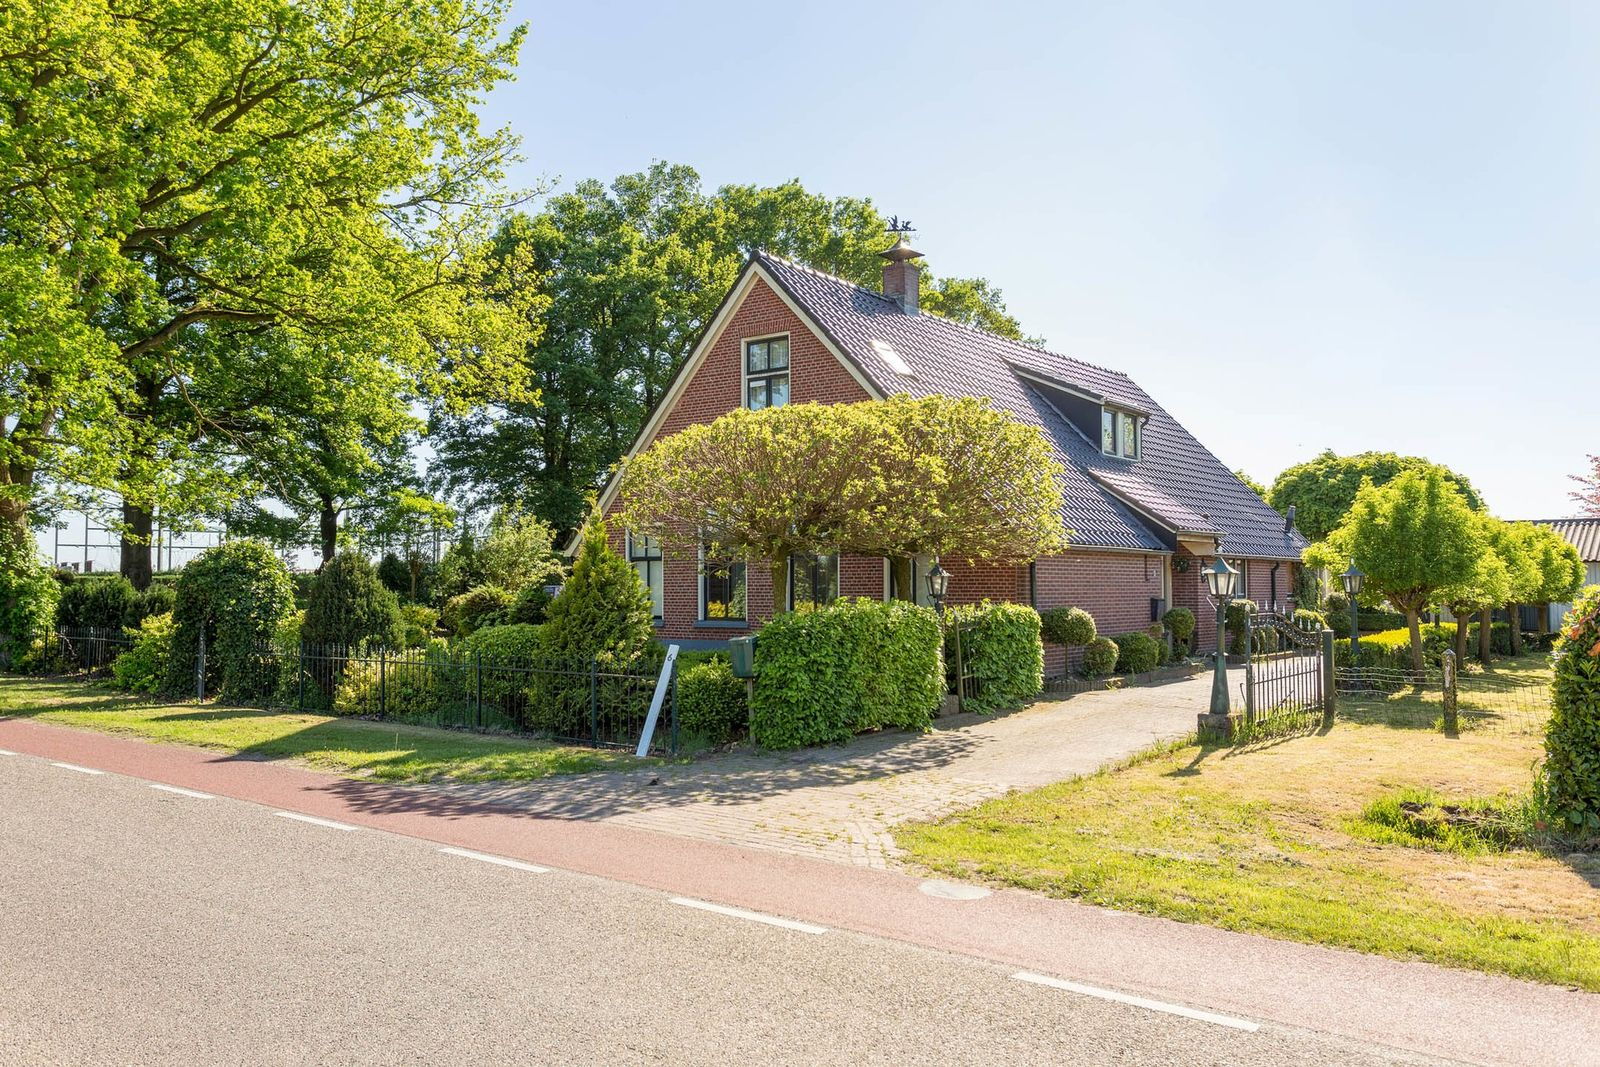 Entersestraat 6, Goor